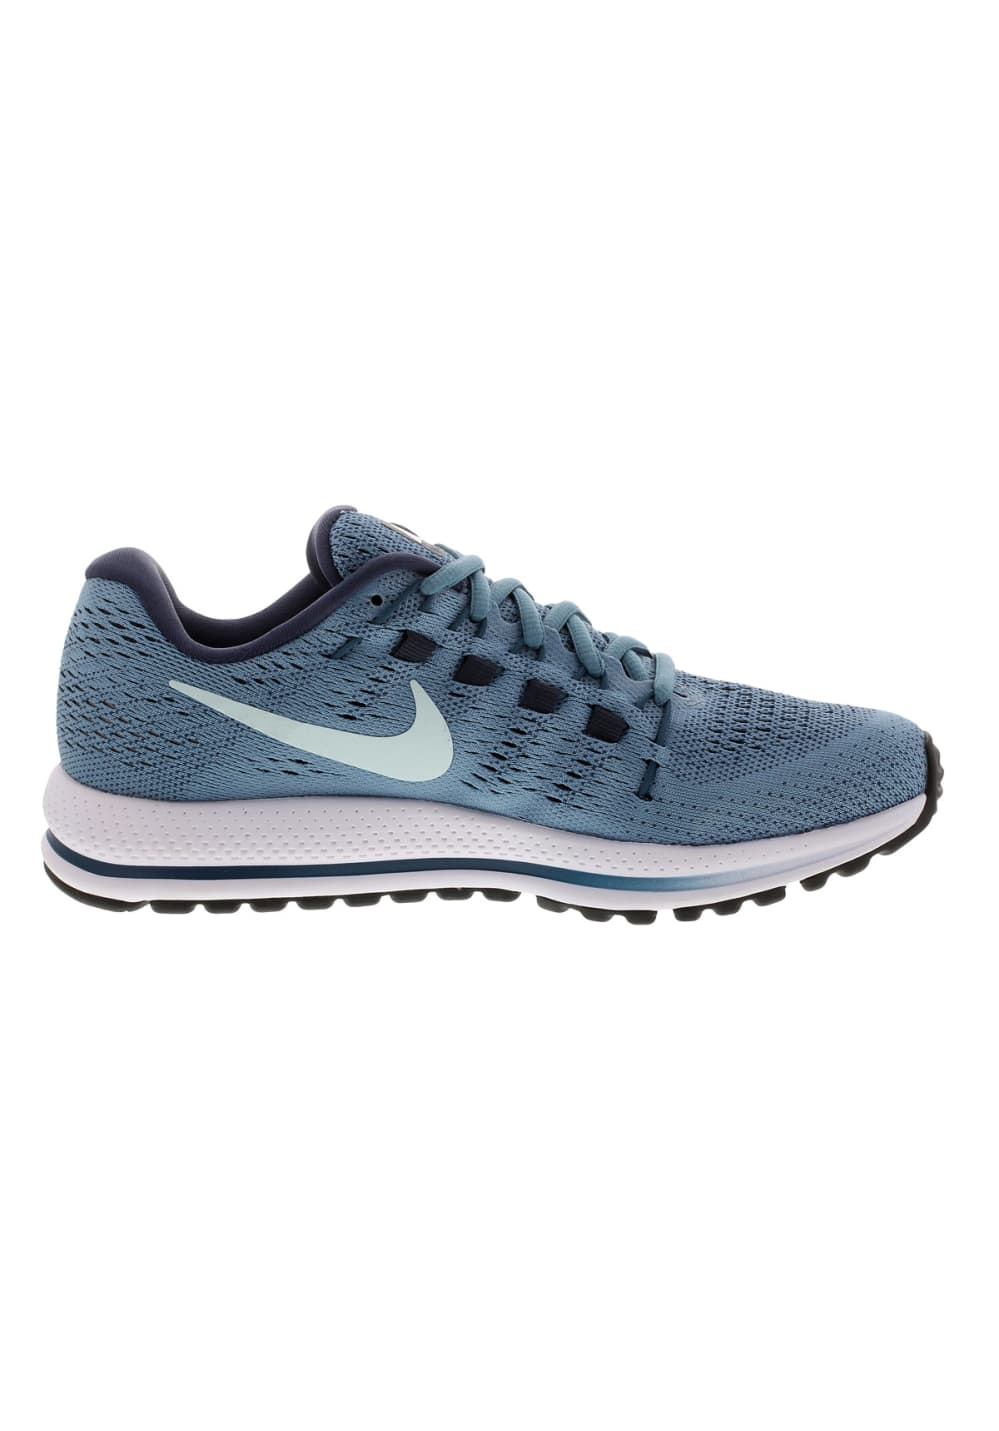 df4b10fdfa9a8 Nike Air Zoom Vomero 12 - Running shoes for Women - Blue